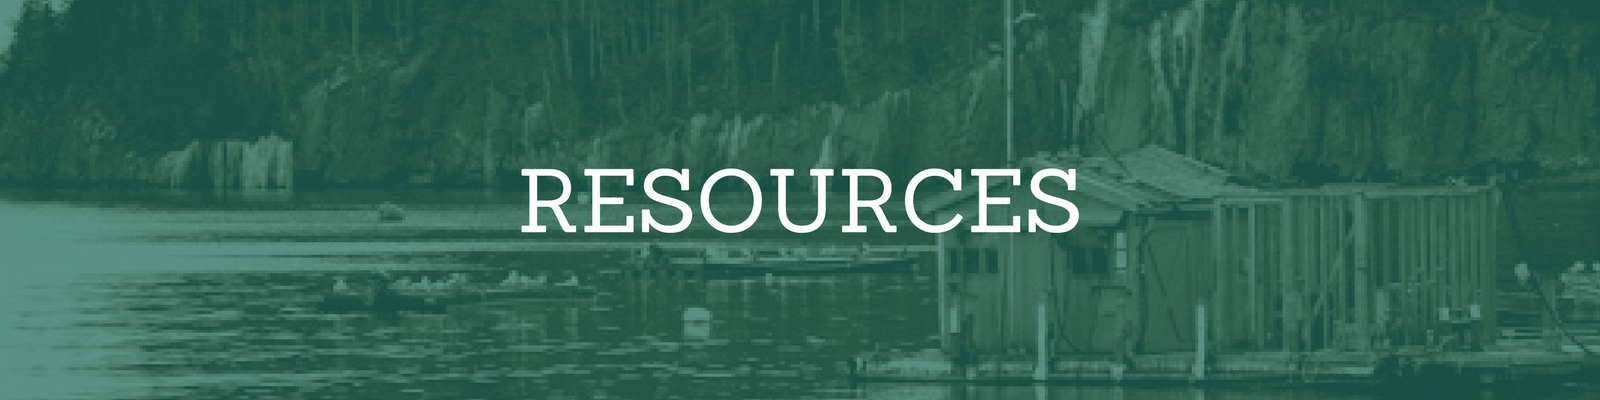 DFP Resources Section (1)